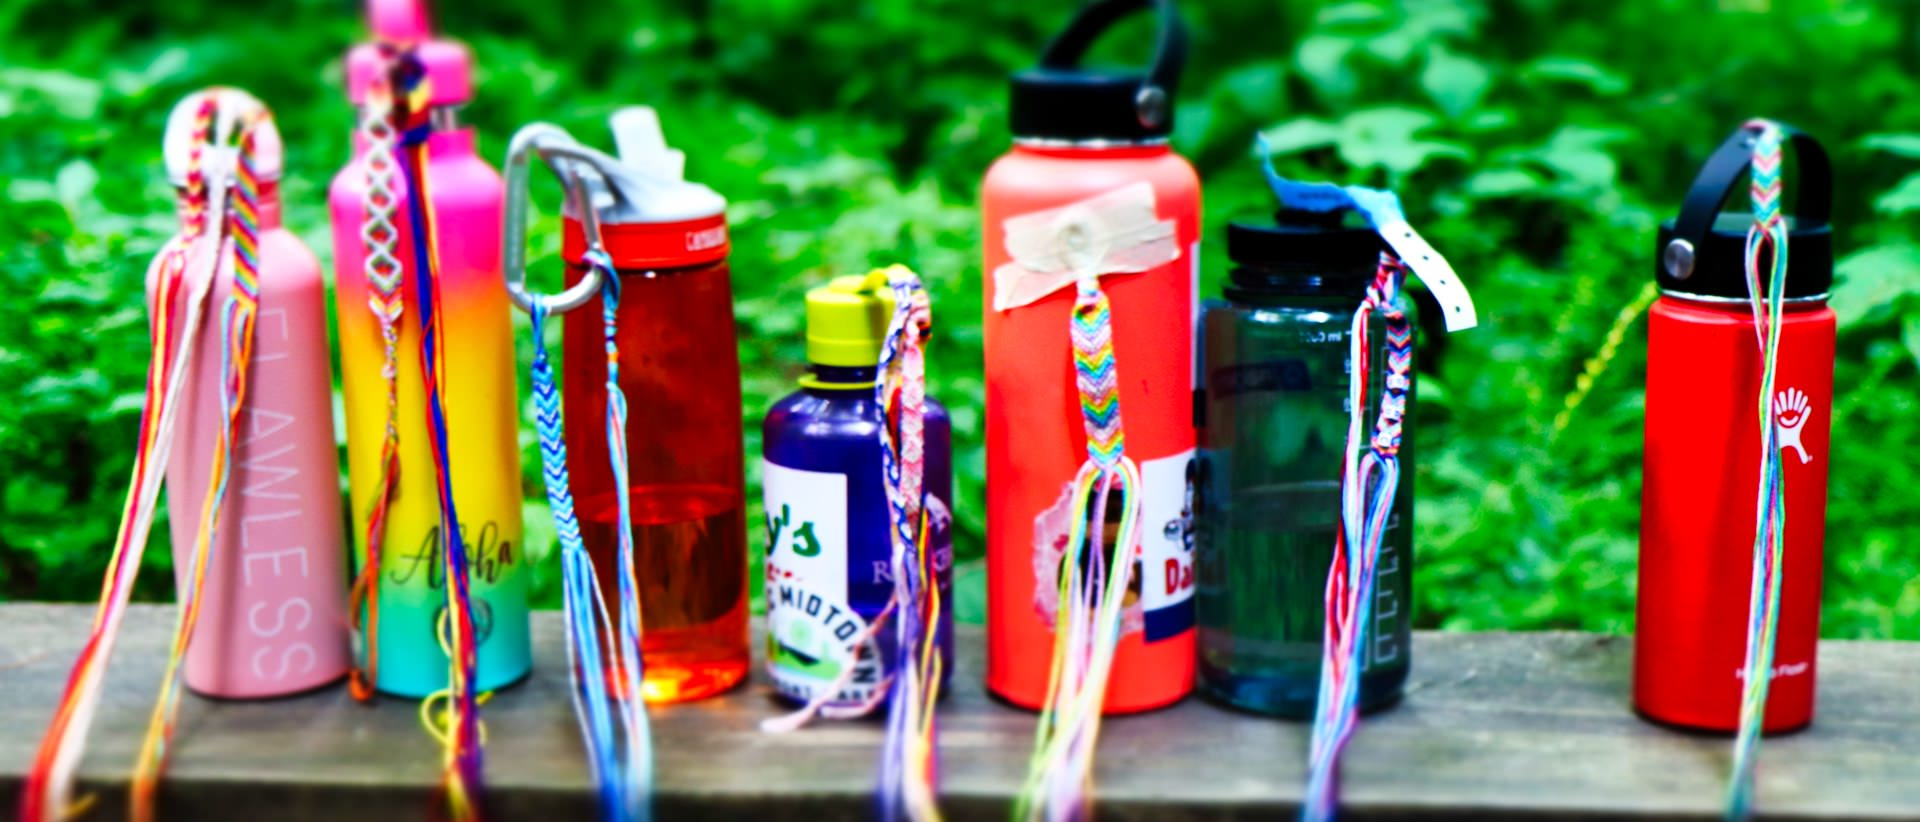 row of camp water bottles with friendship bracelets tied on